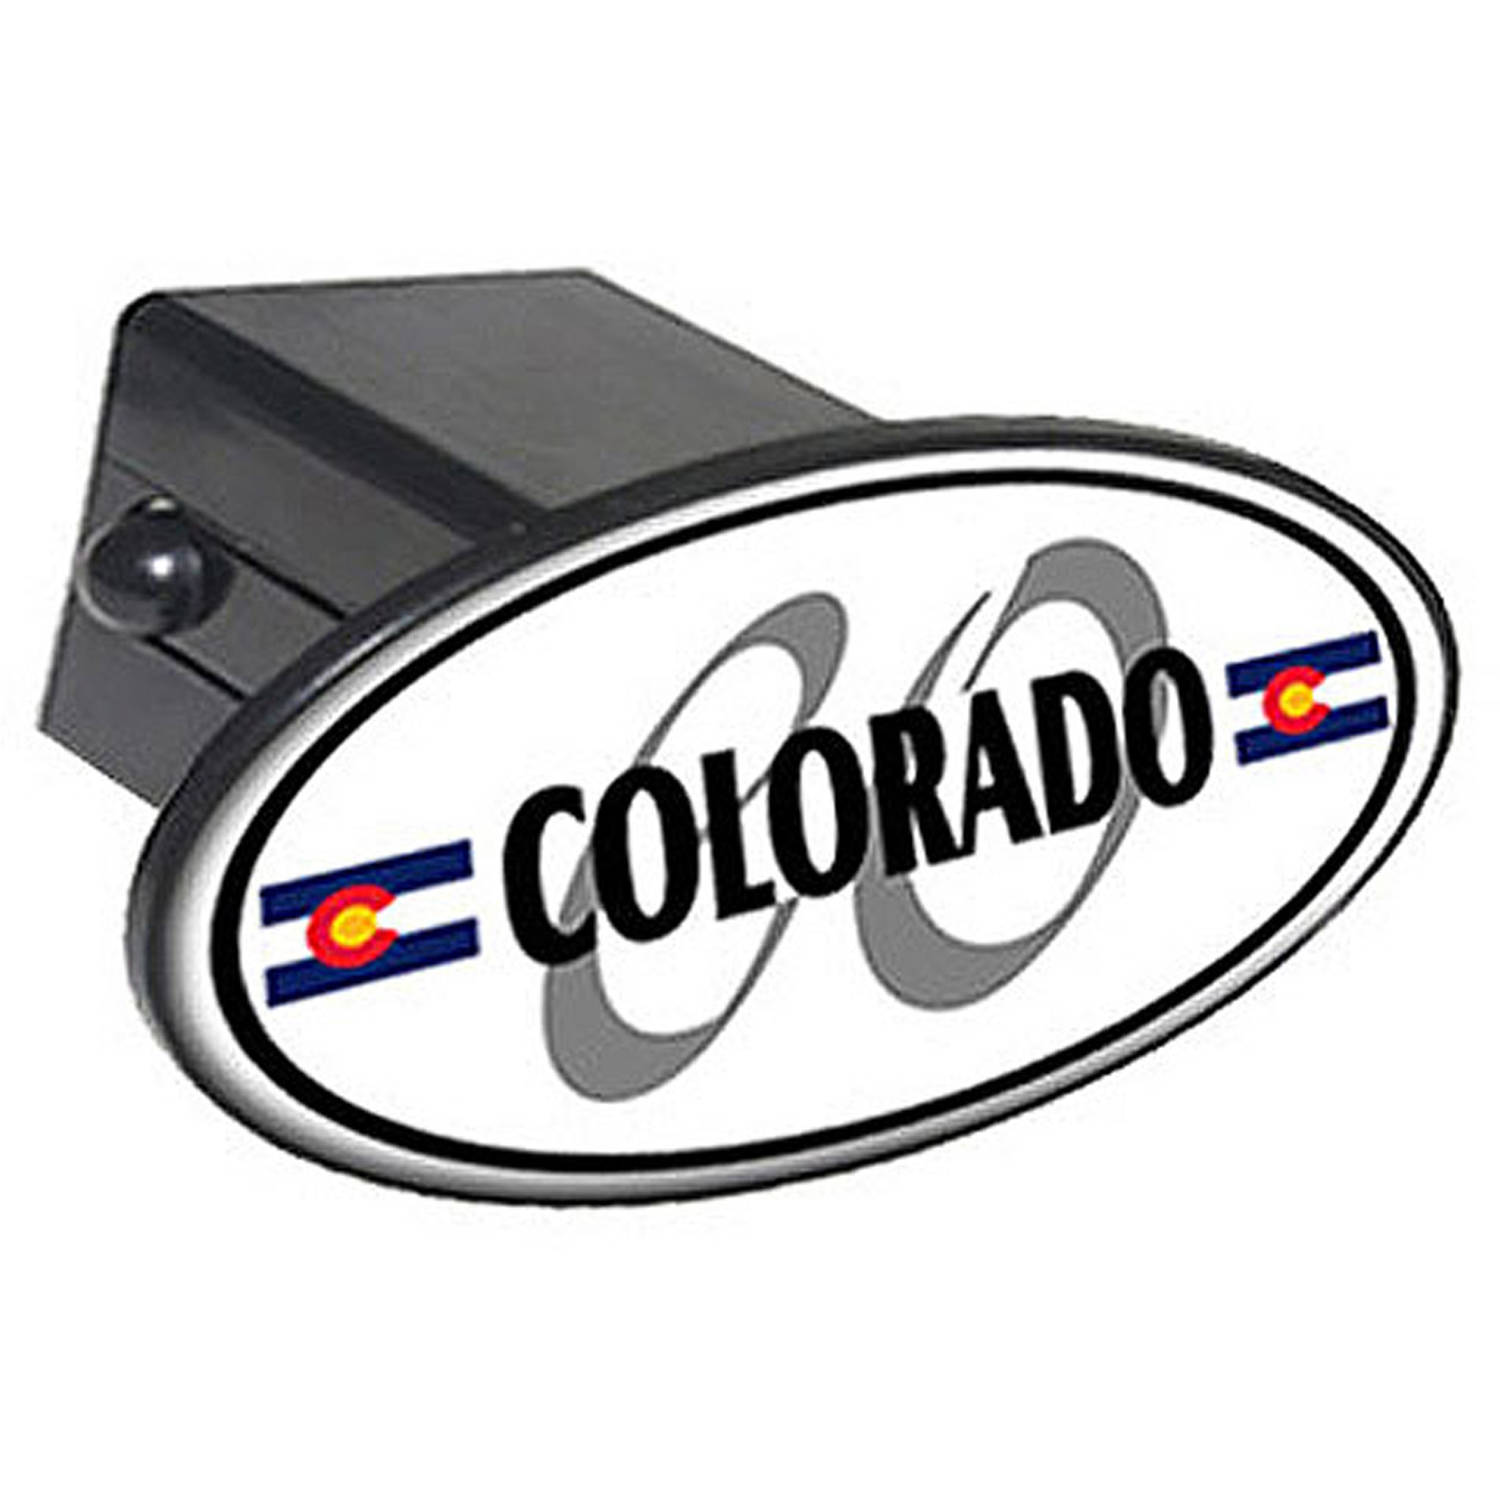 "Colorado Euro Oval Flag 2"" Oval Tow Trailer Hitch Cover Plug Insert"